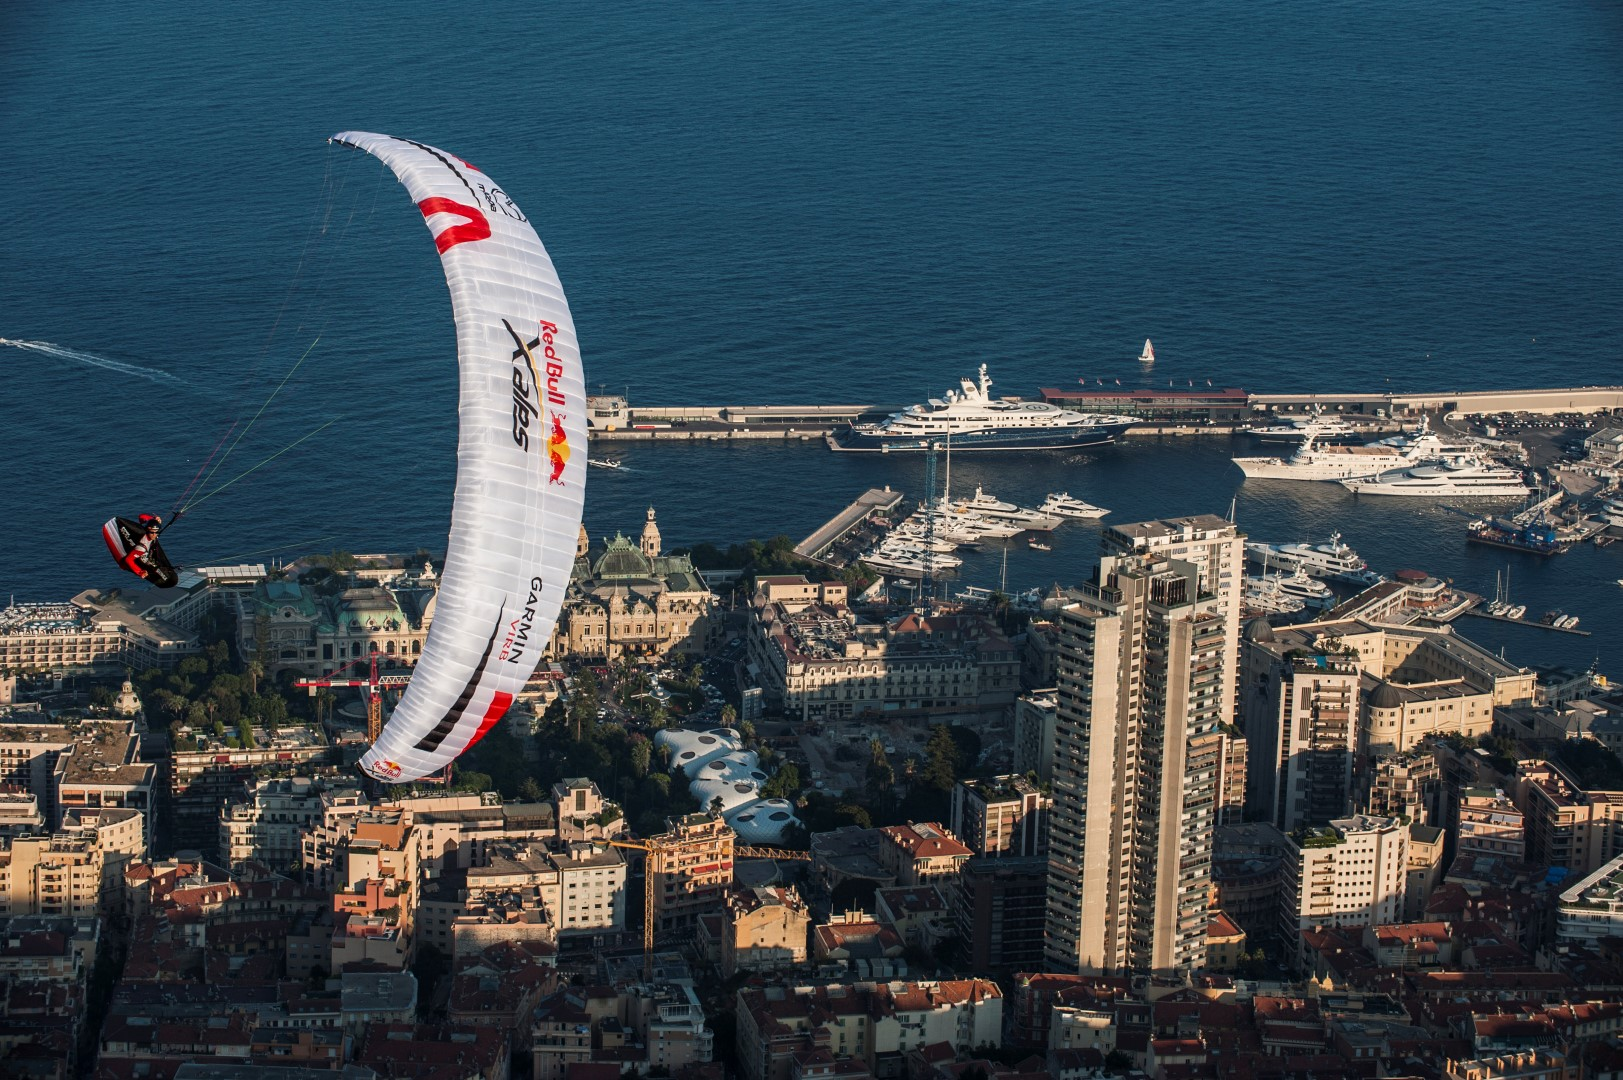 Competitors fly at the Red Bull X-Alps at Monaco, France on July 16th 2015